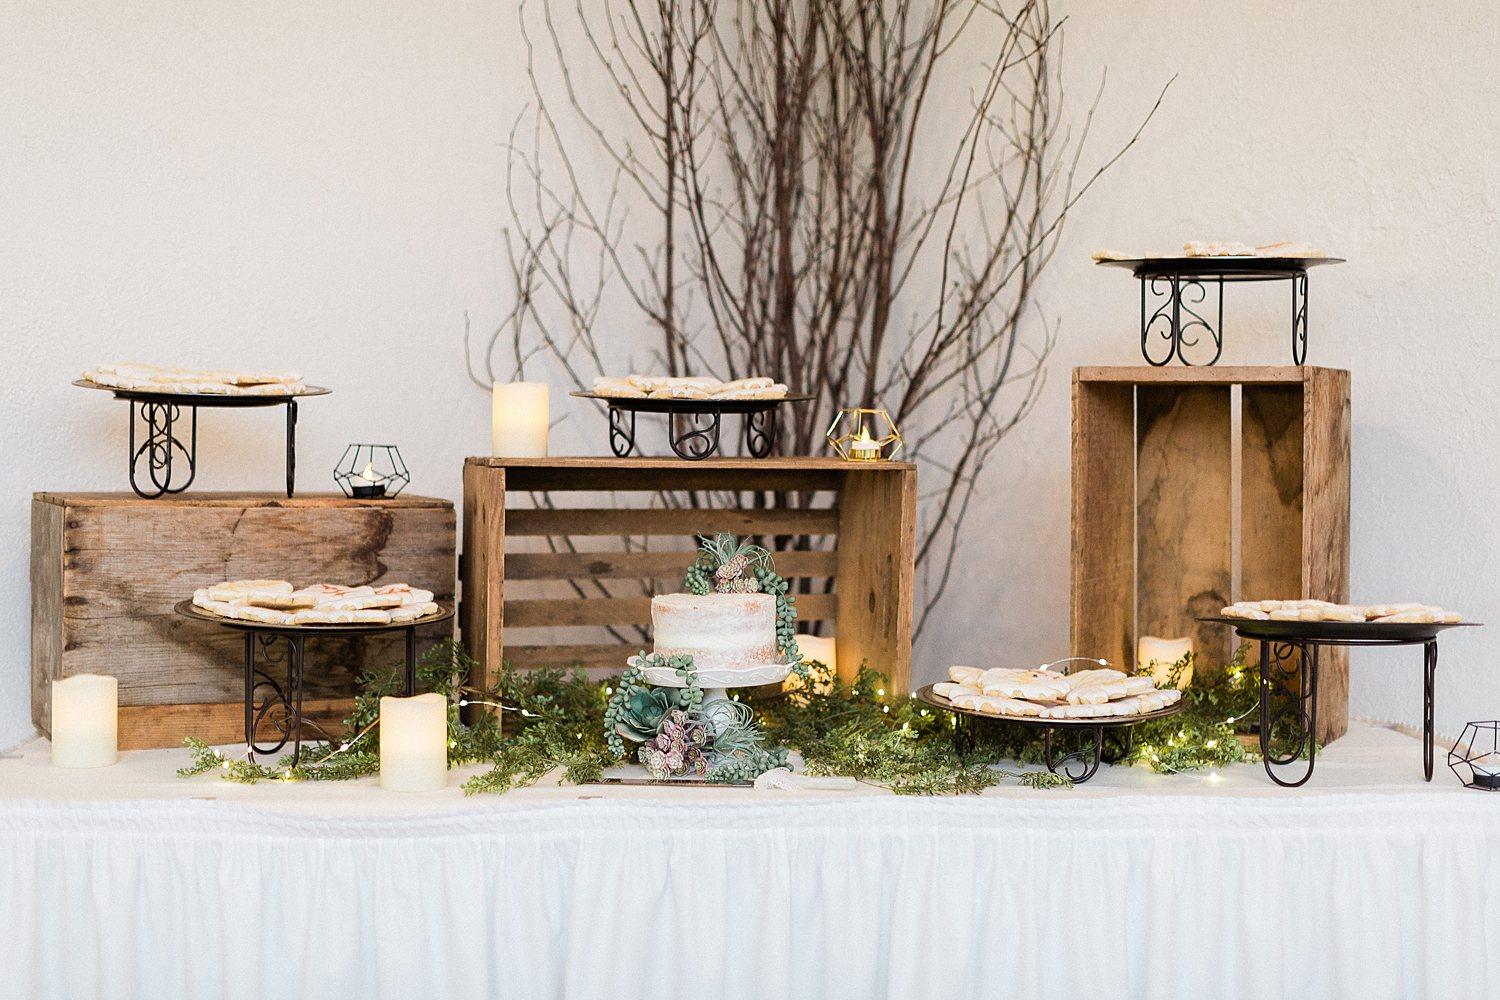 North_Central_Wisconsin_Event_Wedding_Venues_Fall_Weddings_The_Bailiwick_Venue_James-Stokes-Photography057.jpg